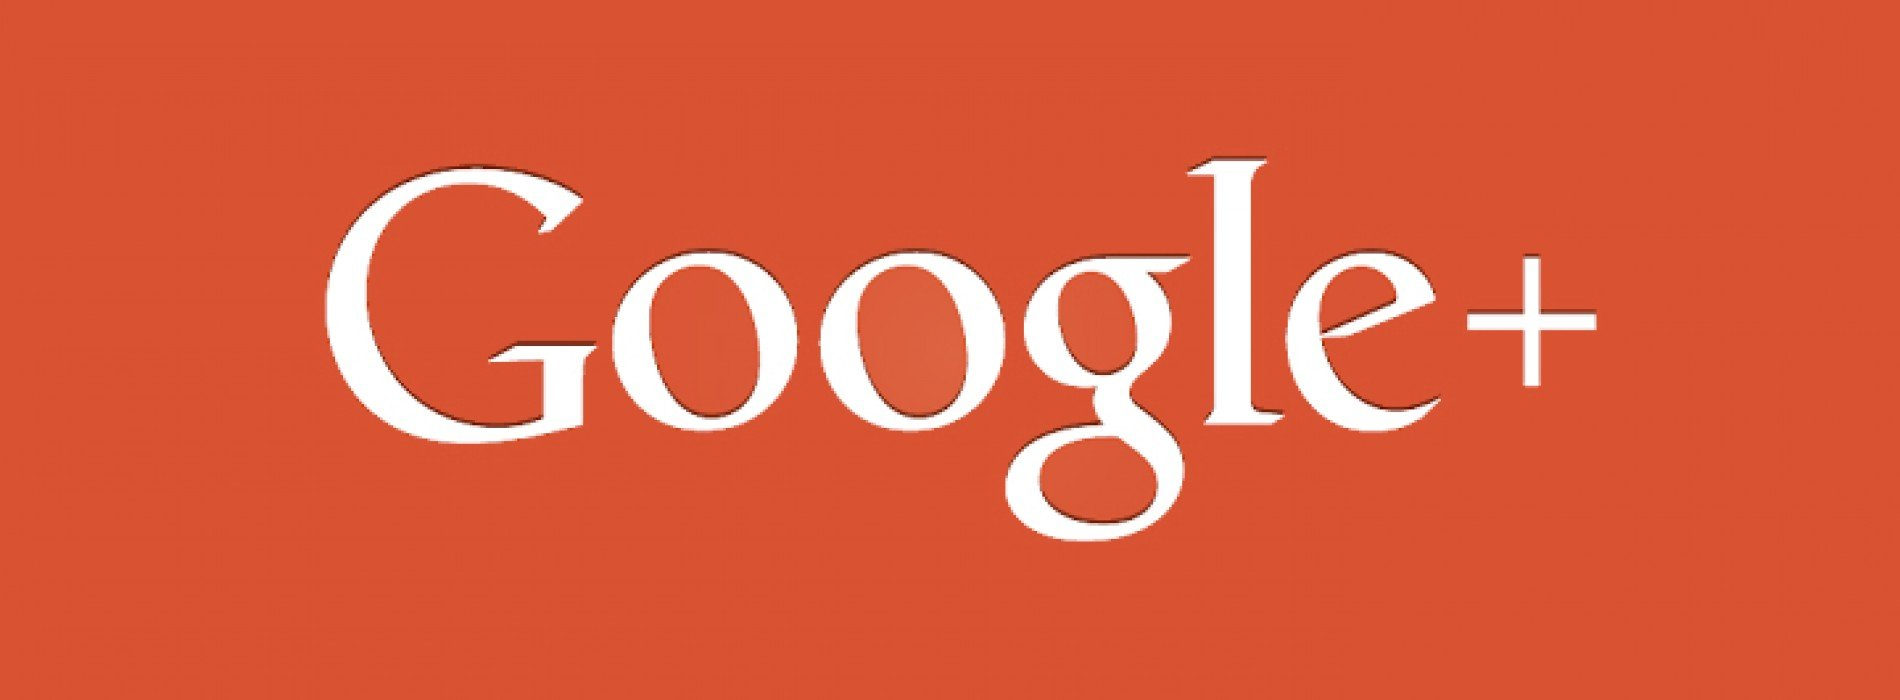 Google+ app updated with Chromecast support [APK Download]